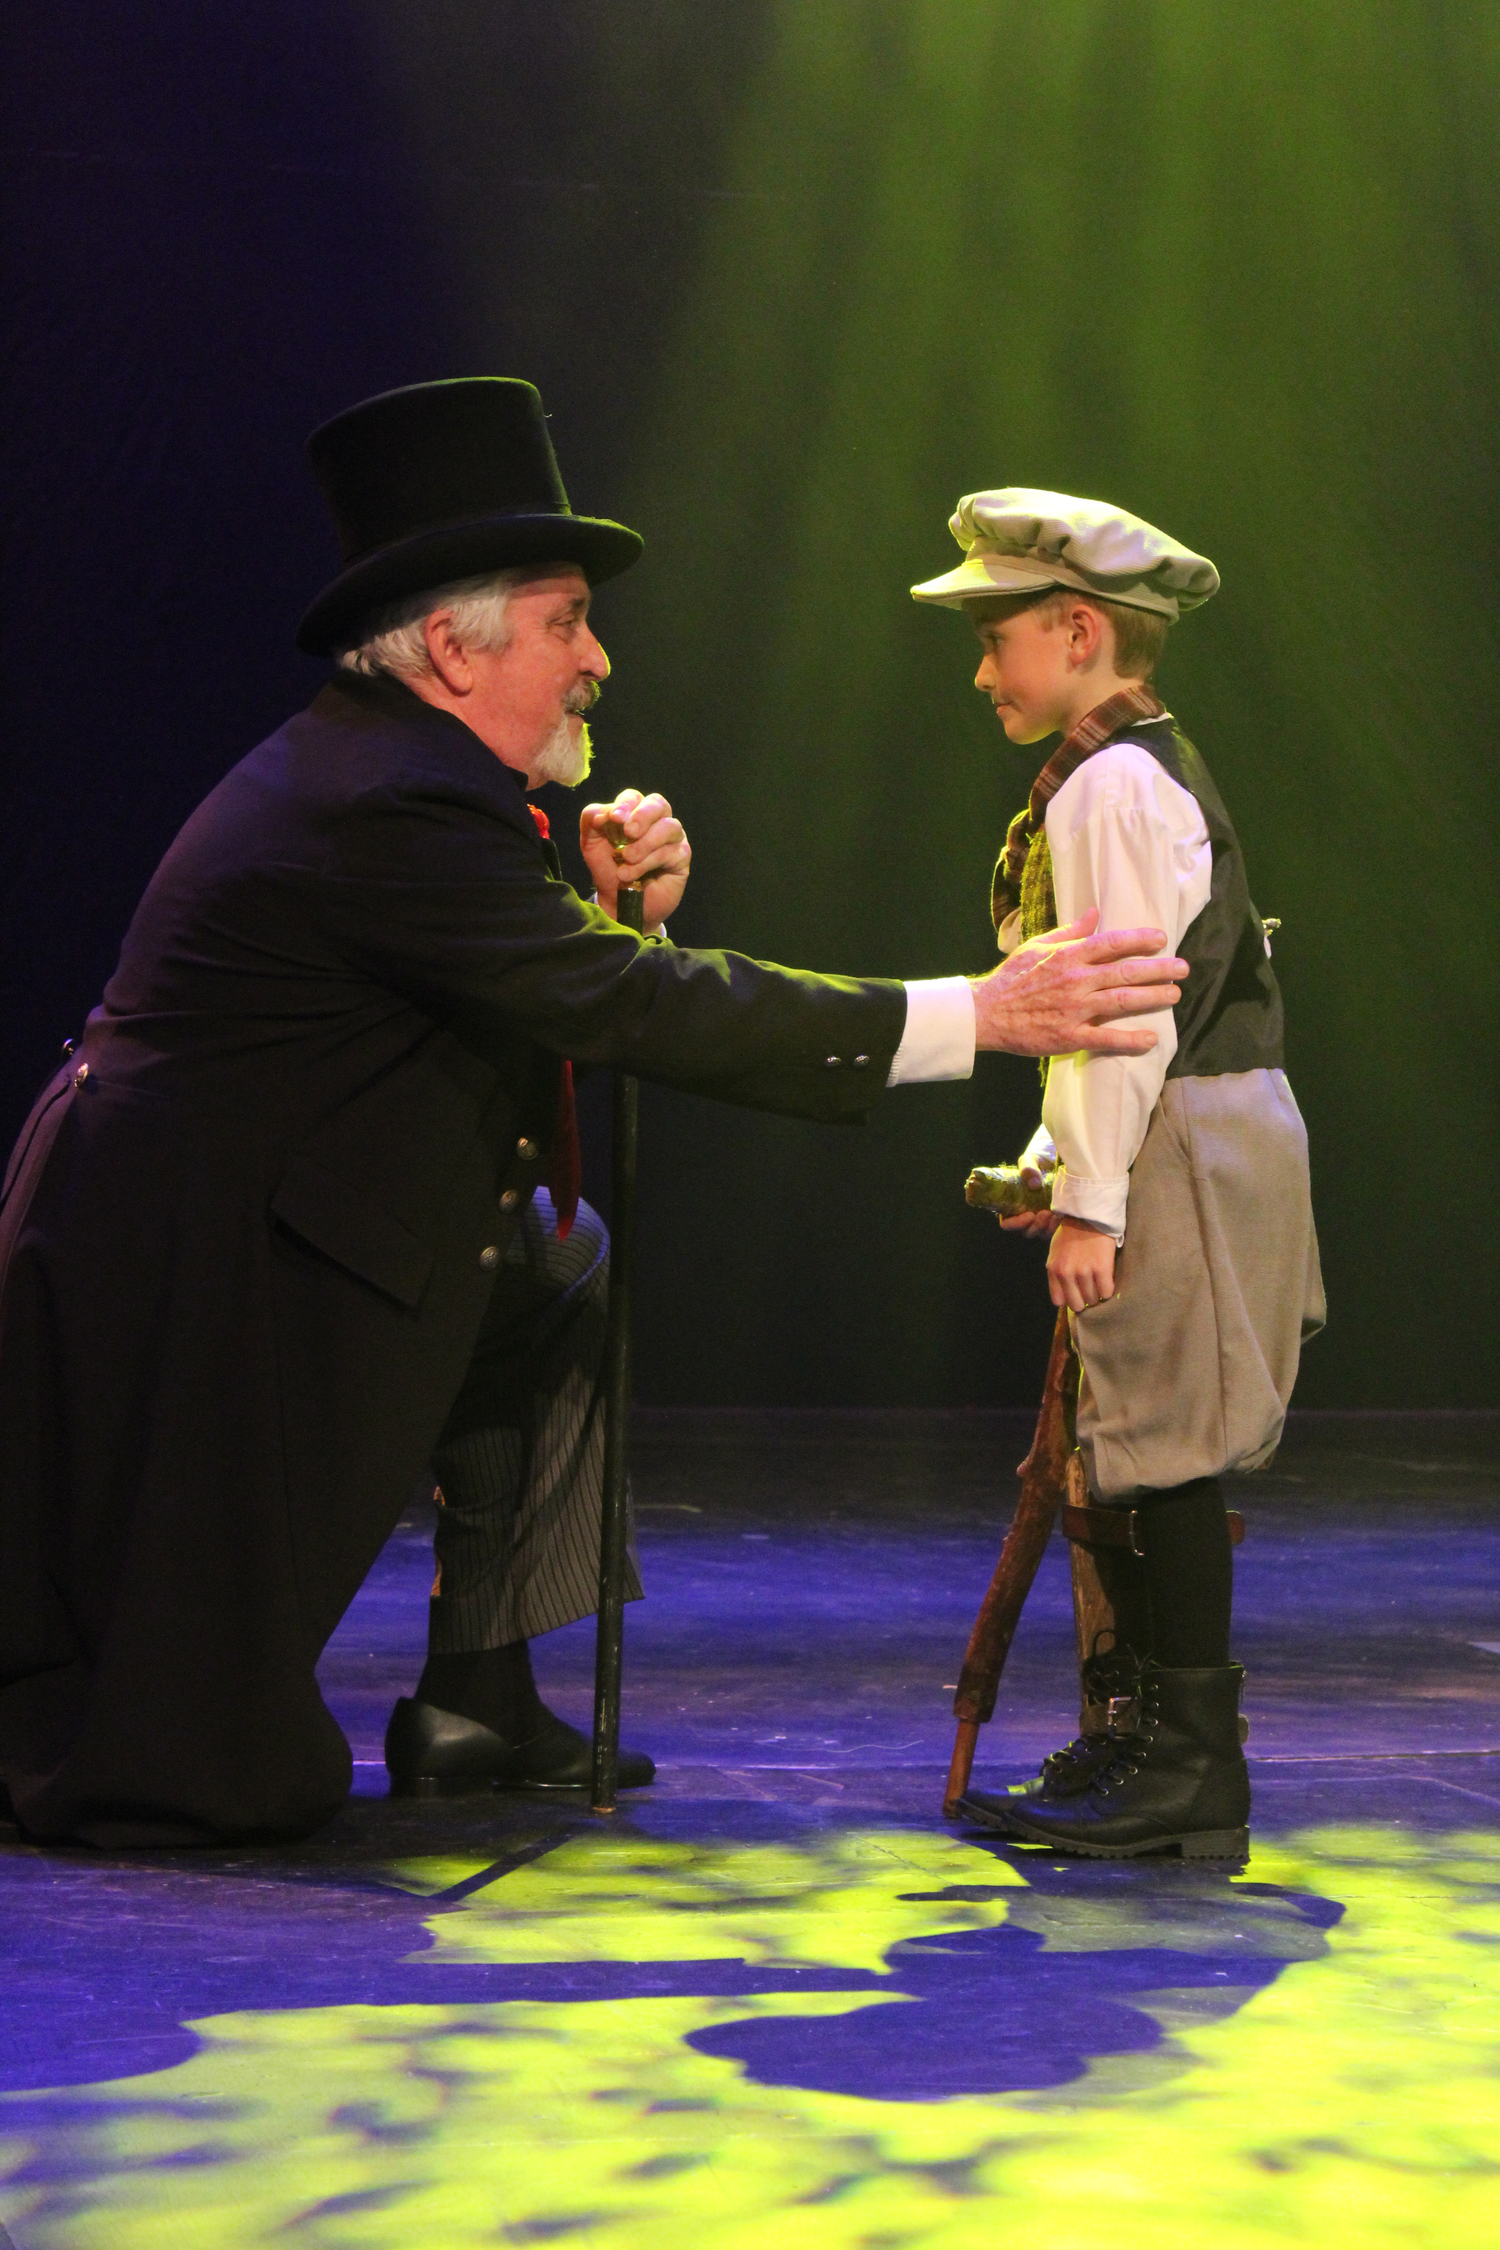 BWW Review: A CHRISTMAS CAROL Shines Bright with Hope at Theatre Baton Rouge